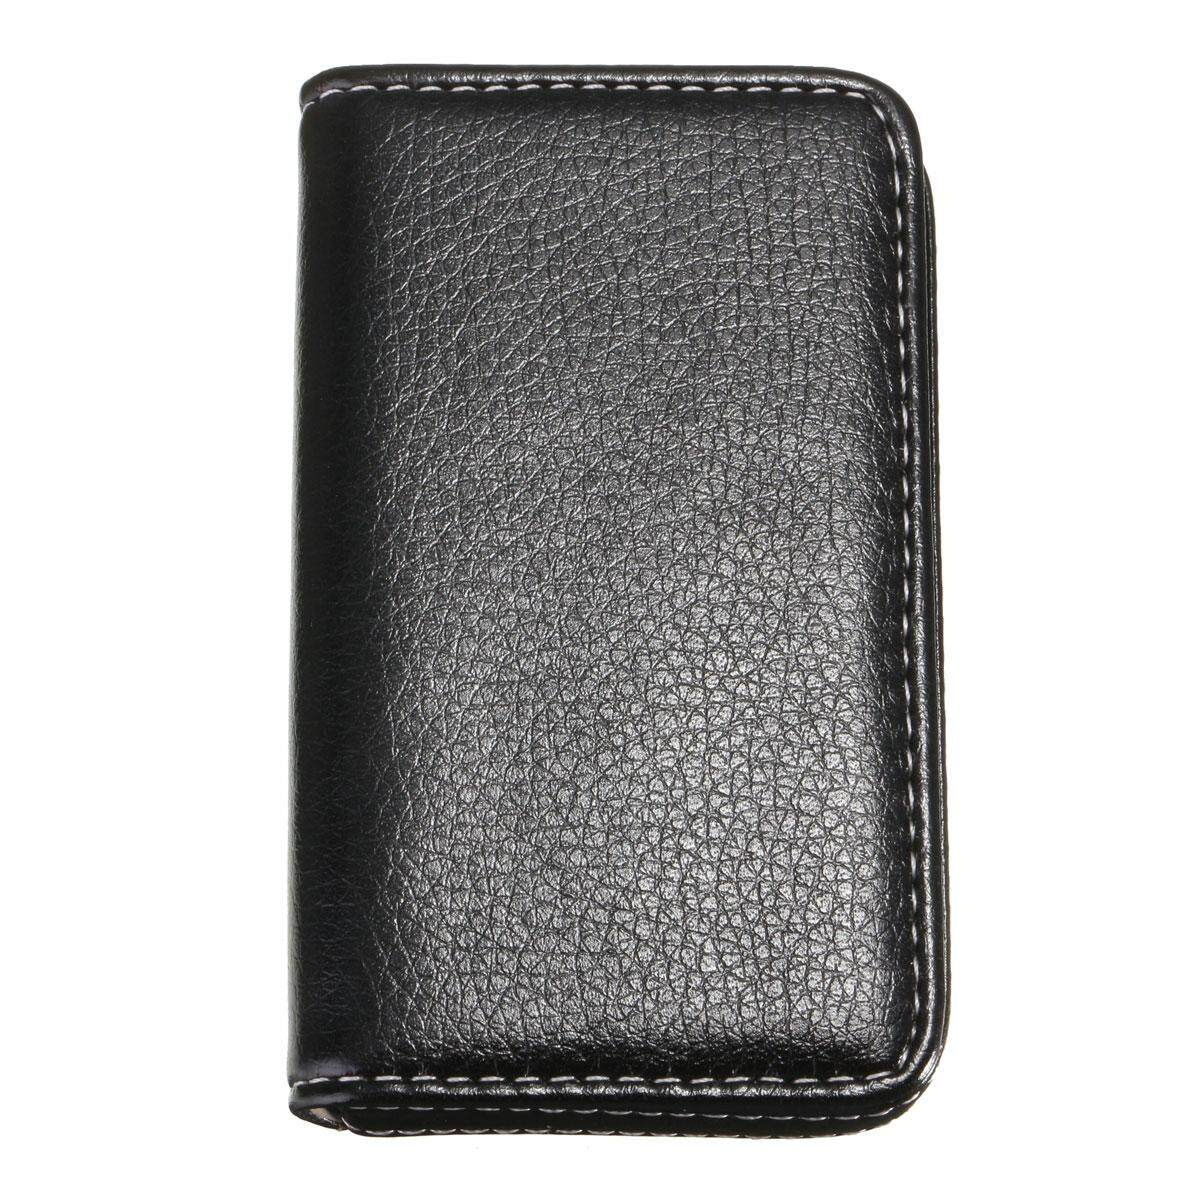 Malaysia waterproof business id credit card wallet holder aluminum waterproof business id credit card wallet holder aluminum metal pocket case box black 3 reheart Image collections